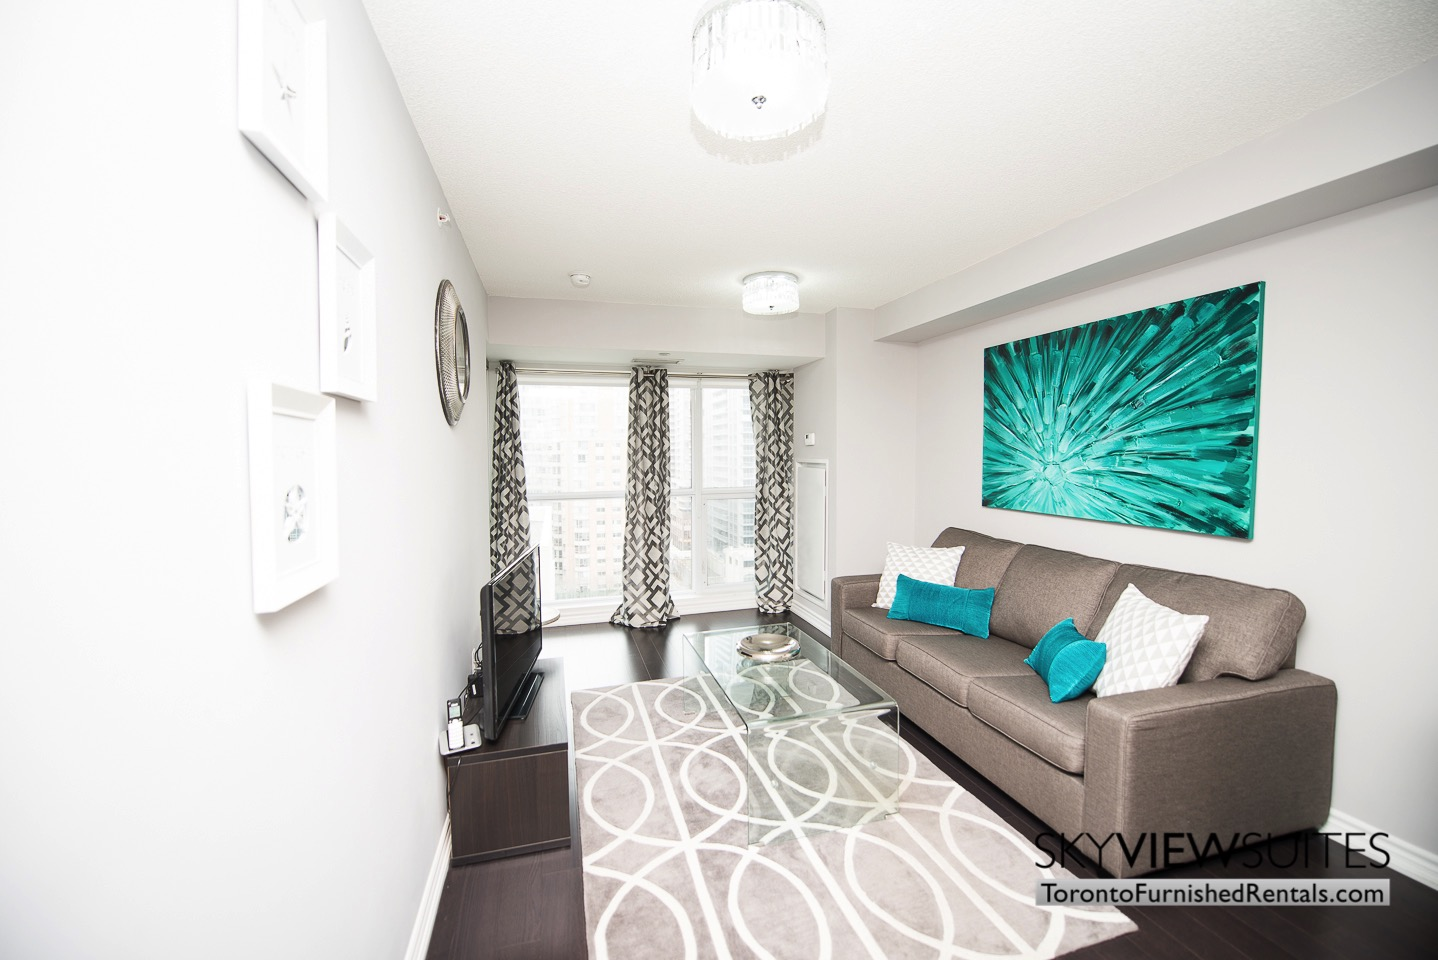 furnished-rentals-toronto-living-room-college